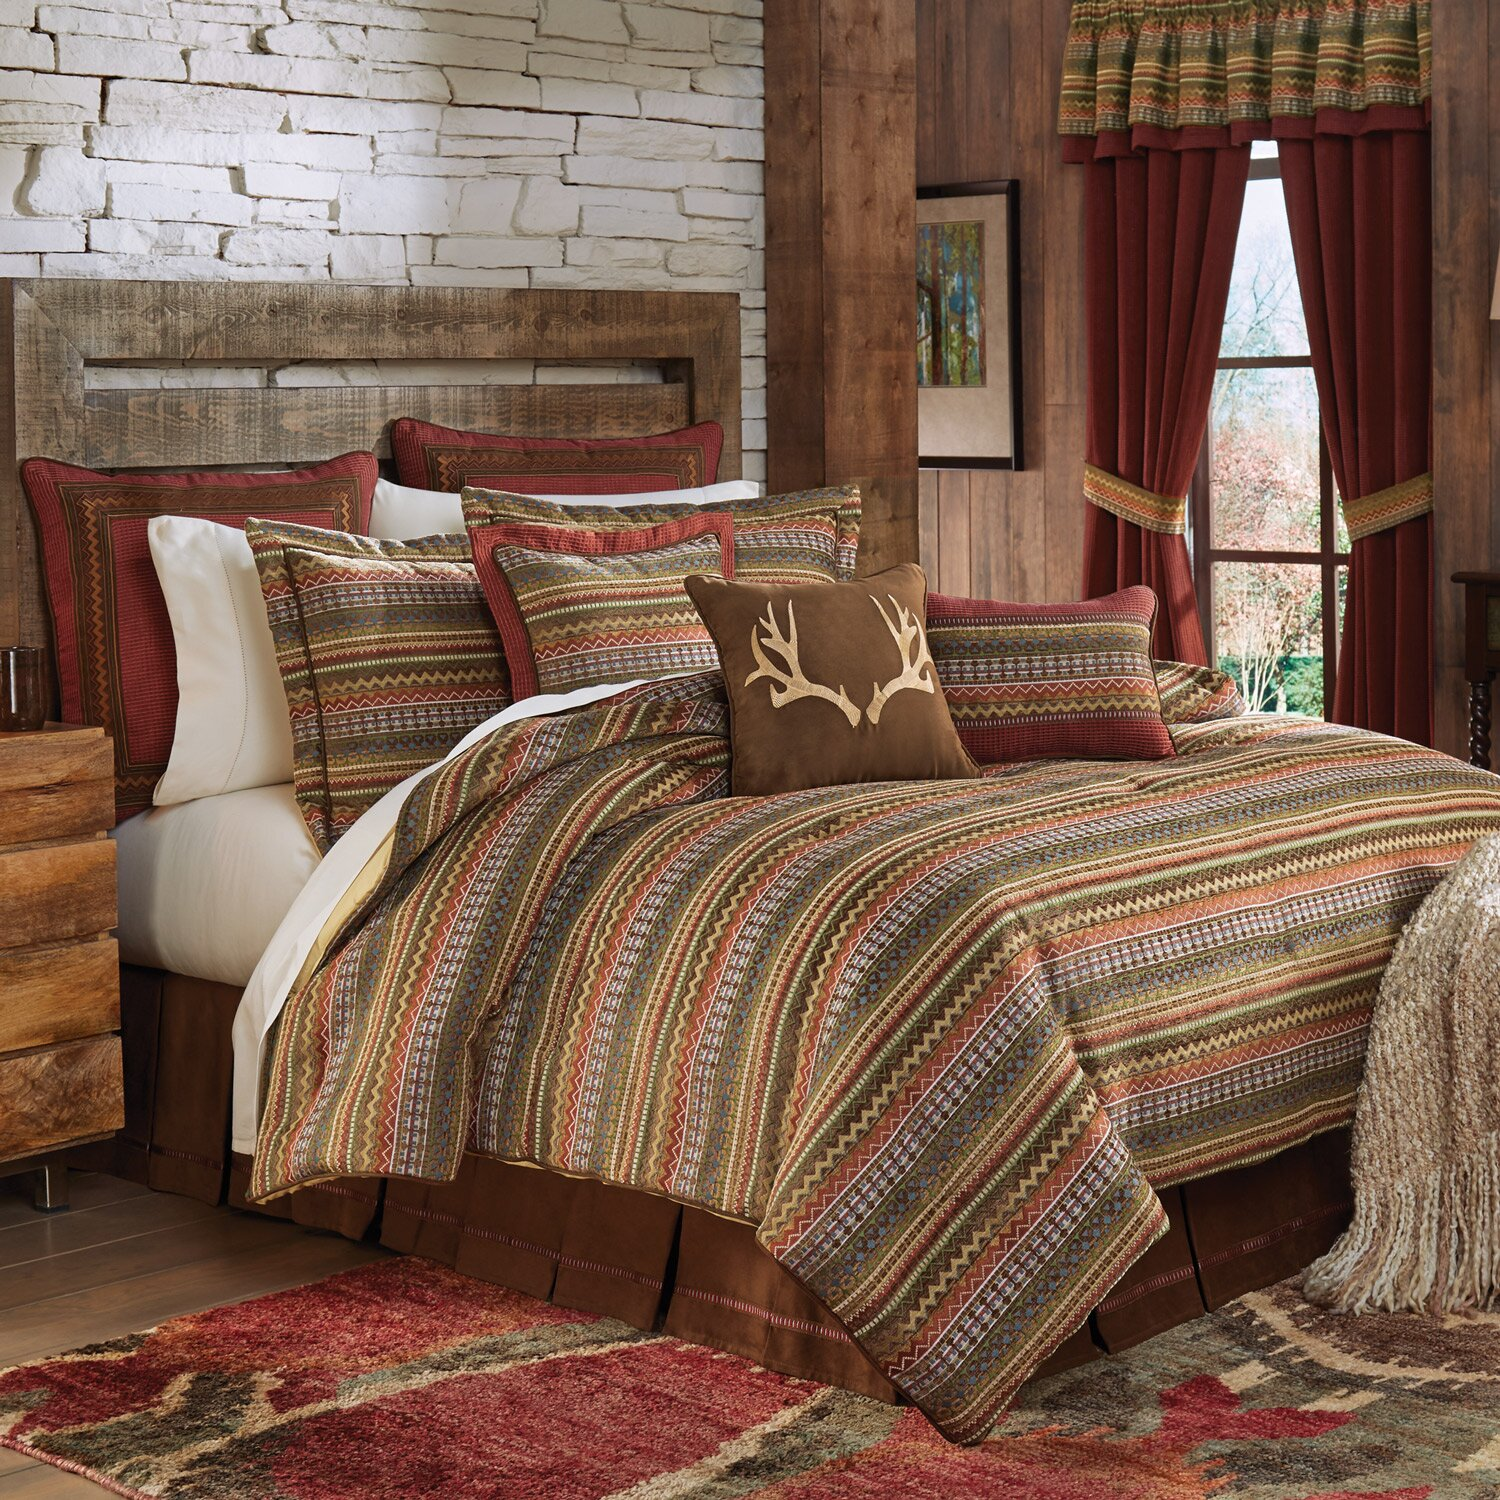 California King Size Comforter Sets: Bring the comfort in with a new bedding set from adoption-funds.ml Your Online Fashion Bedding Store! Get 5% in rewards with Club O!